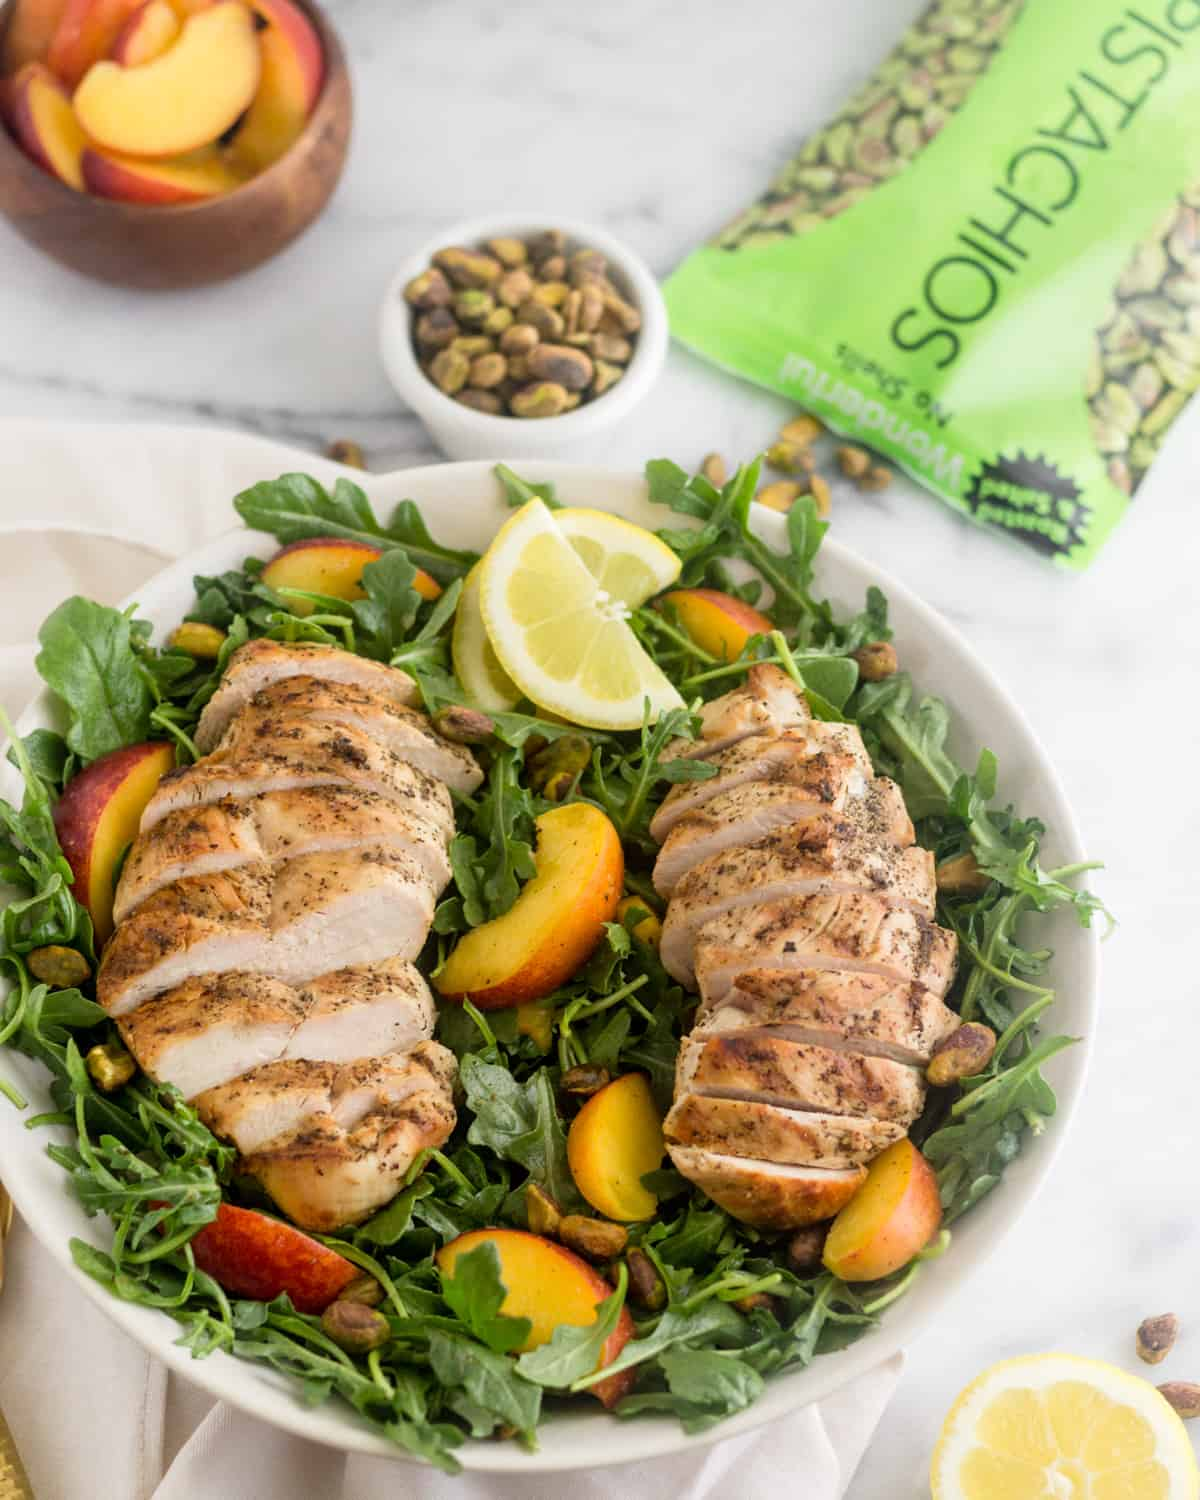 Peach and Pistachio Salad with Grilled Chicken salad in a large bowl with a bag of pistachios, a bowl of pistachios, and a bowl of cut up peaches behind it